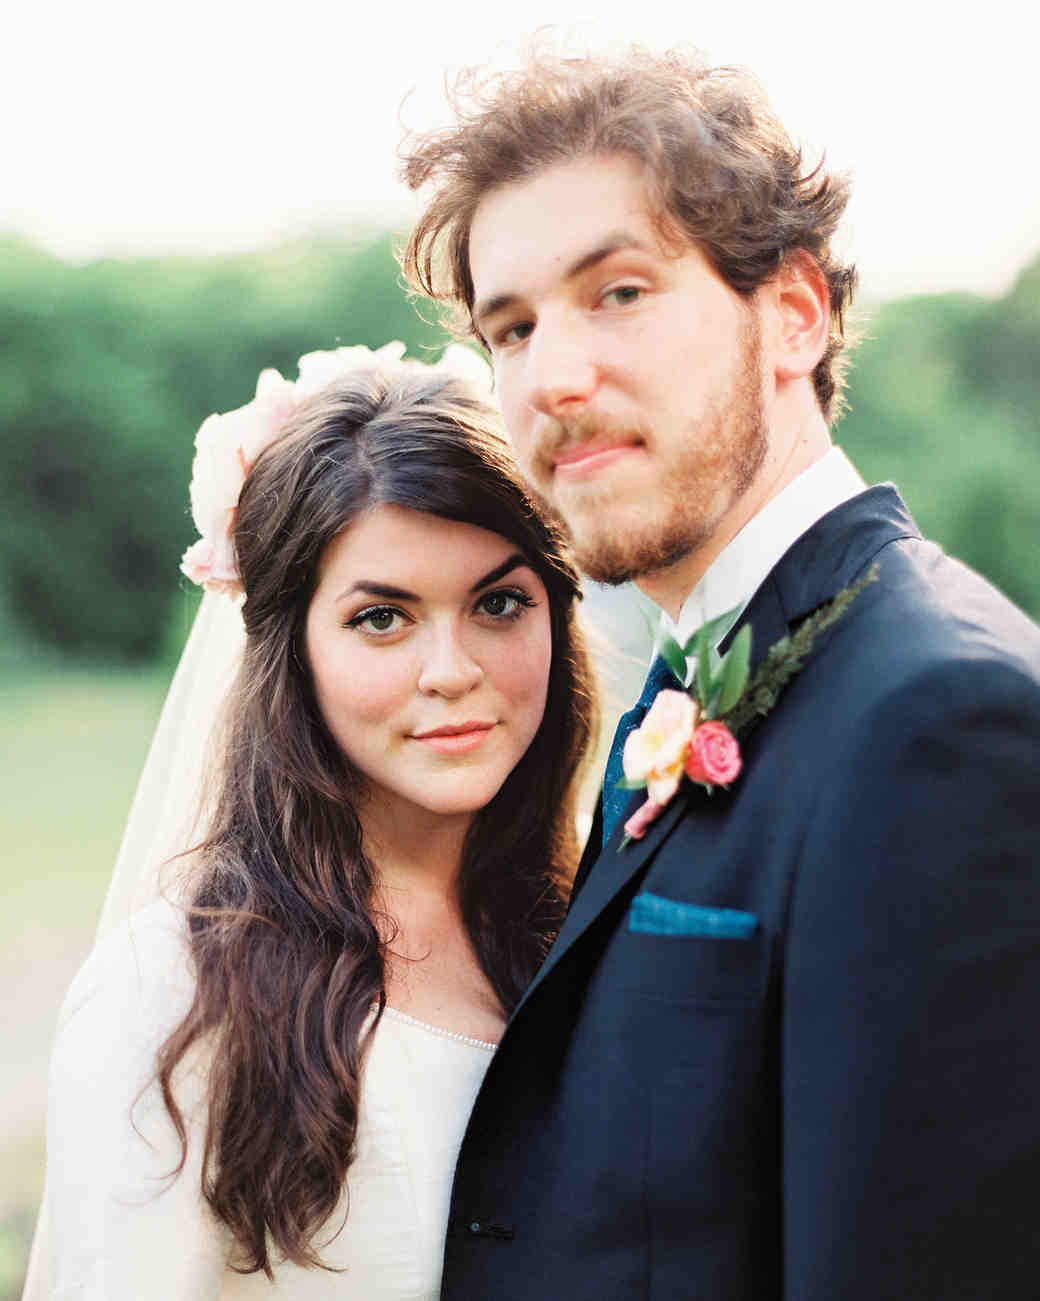 carrie-dan-bride-groom-007114-r1-001-s111627.jpg